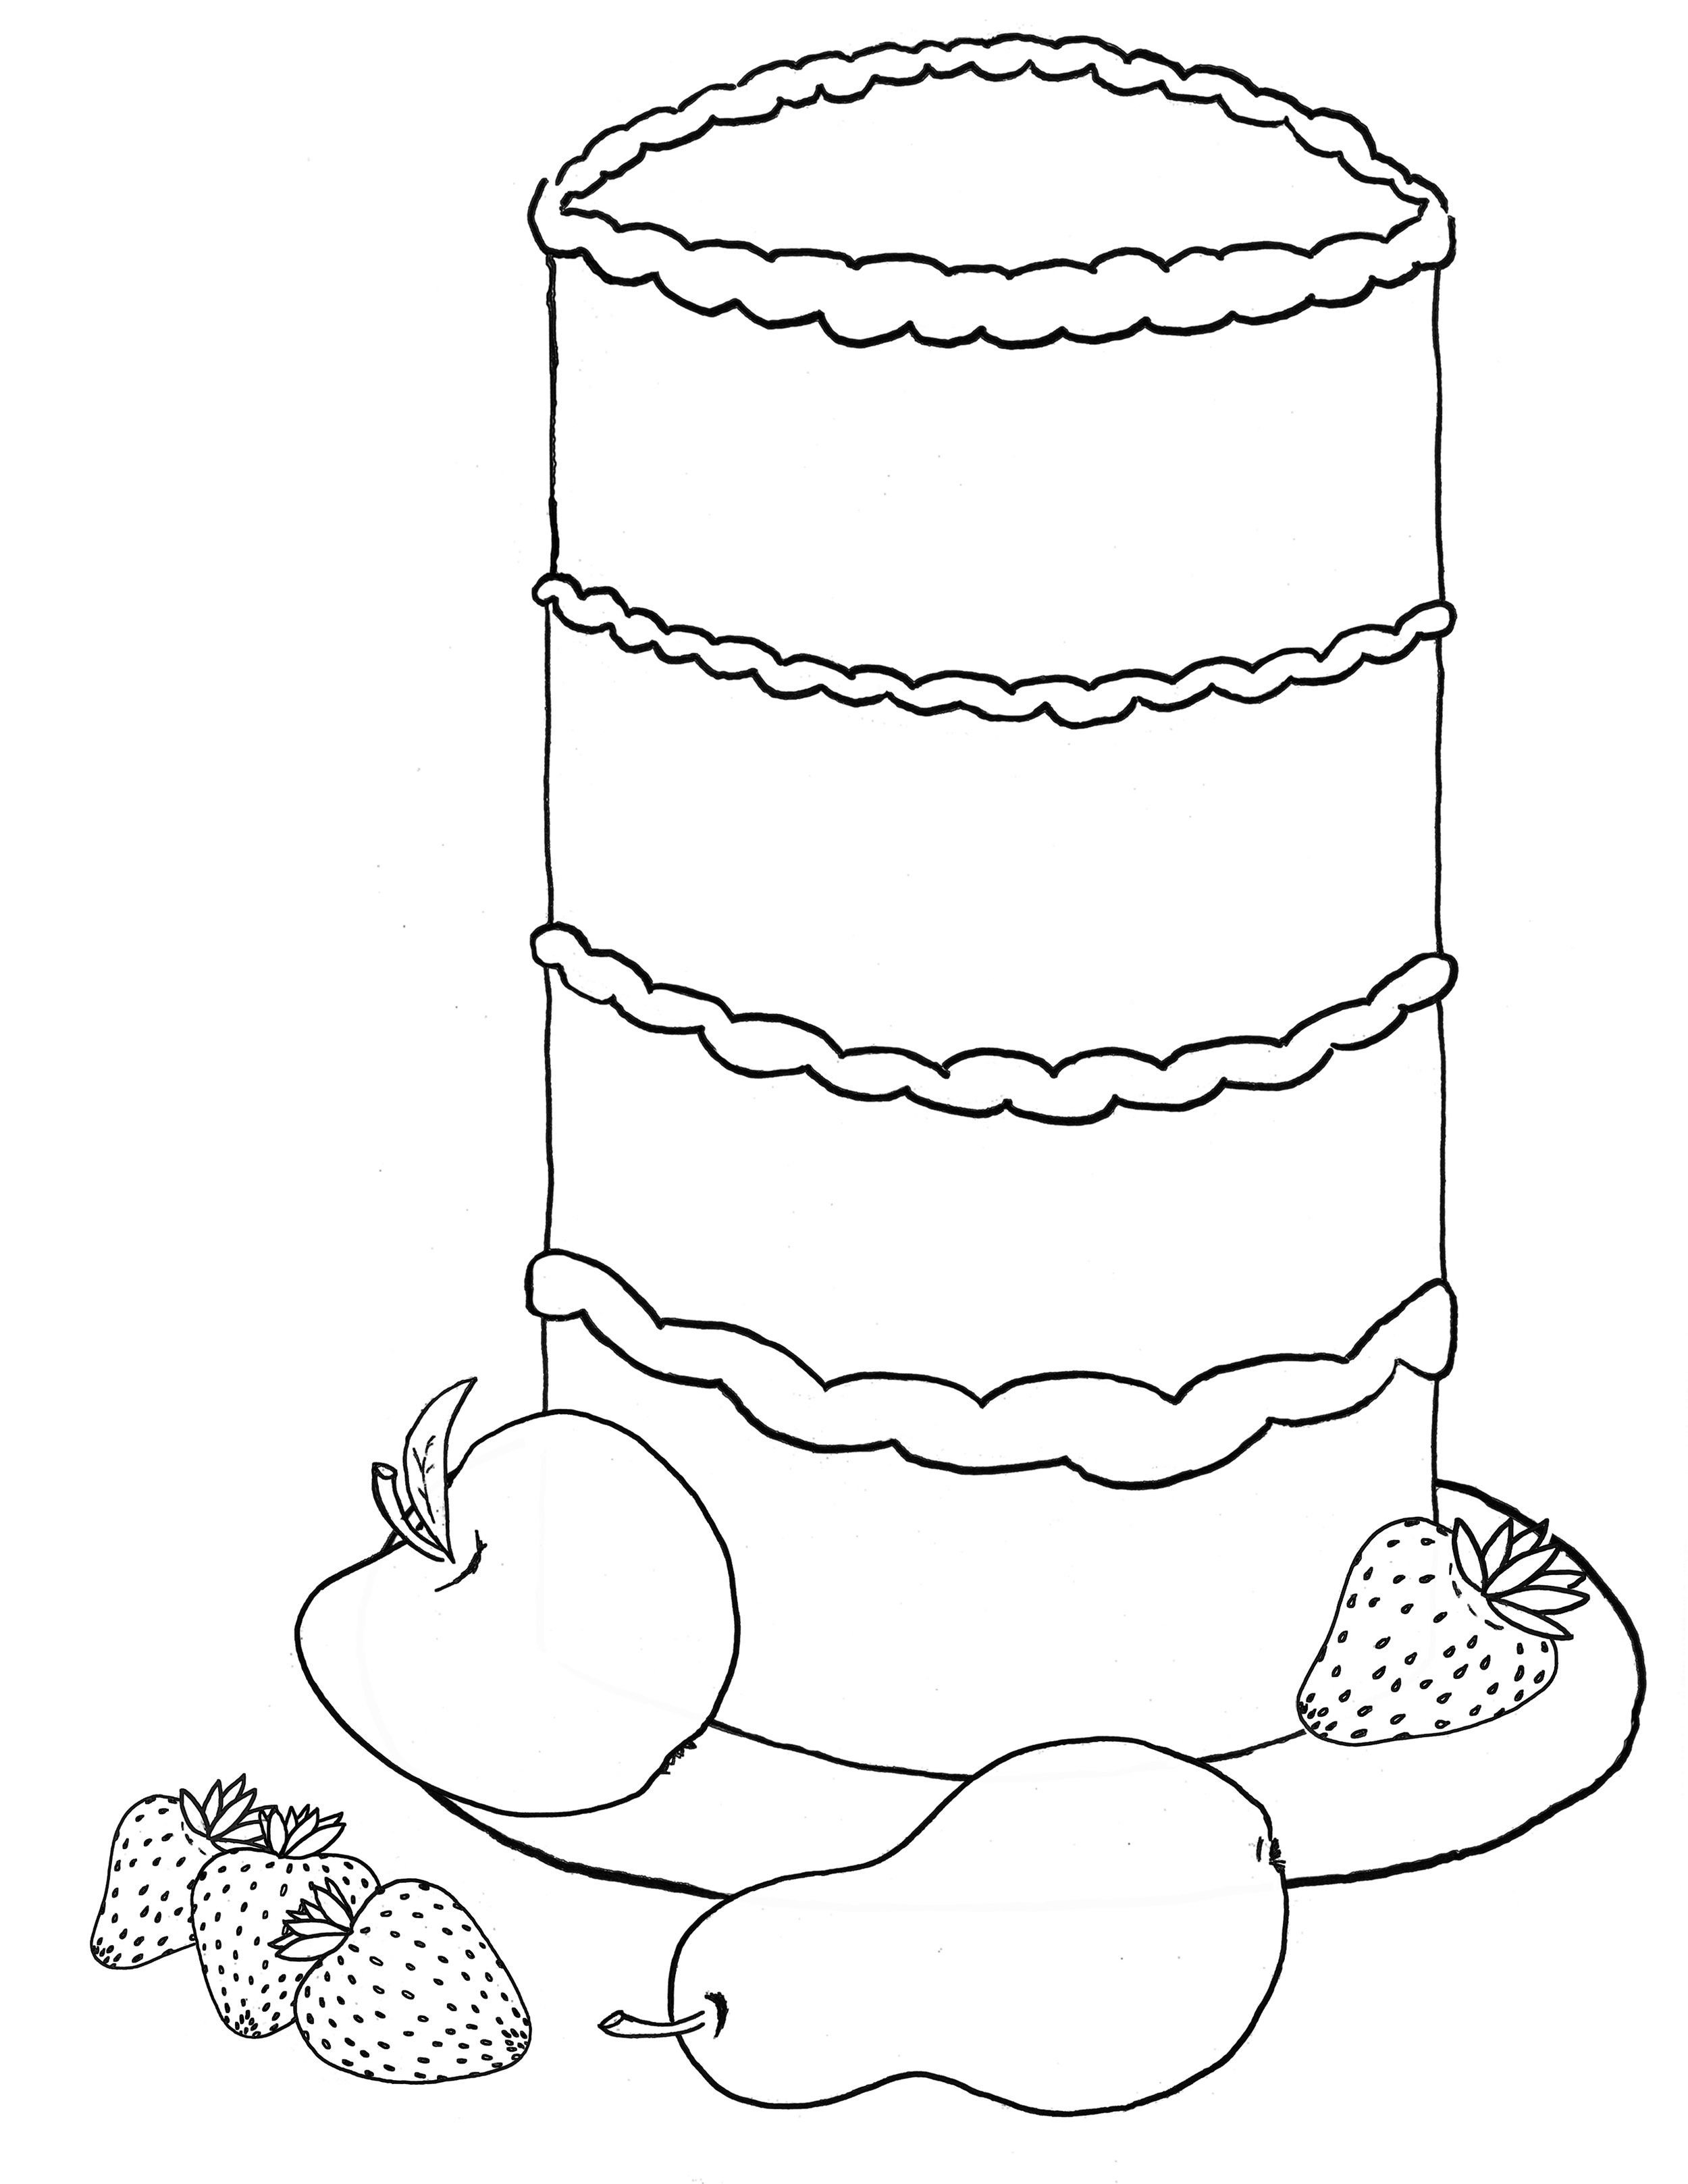 CB-Tall Cake w fruit.jpg